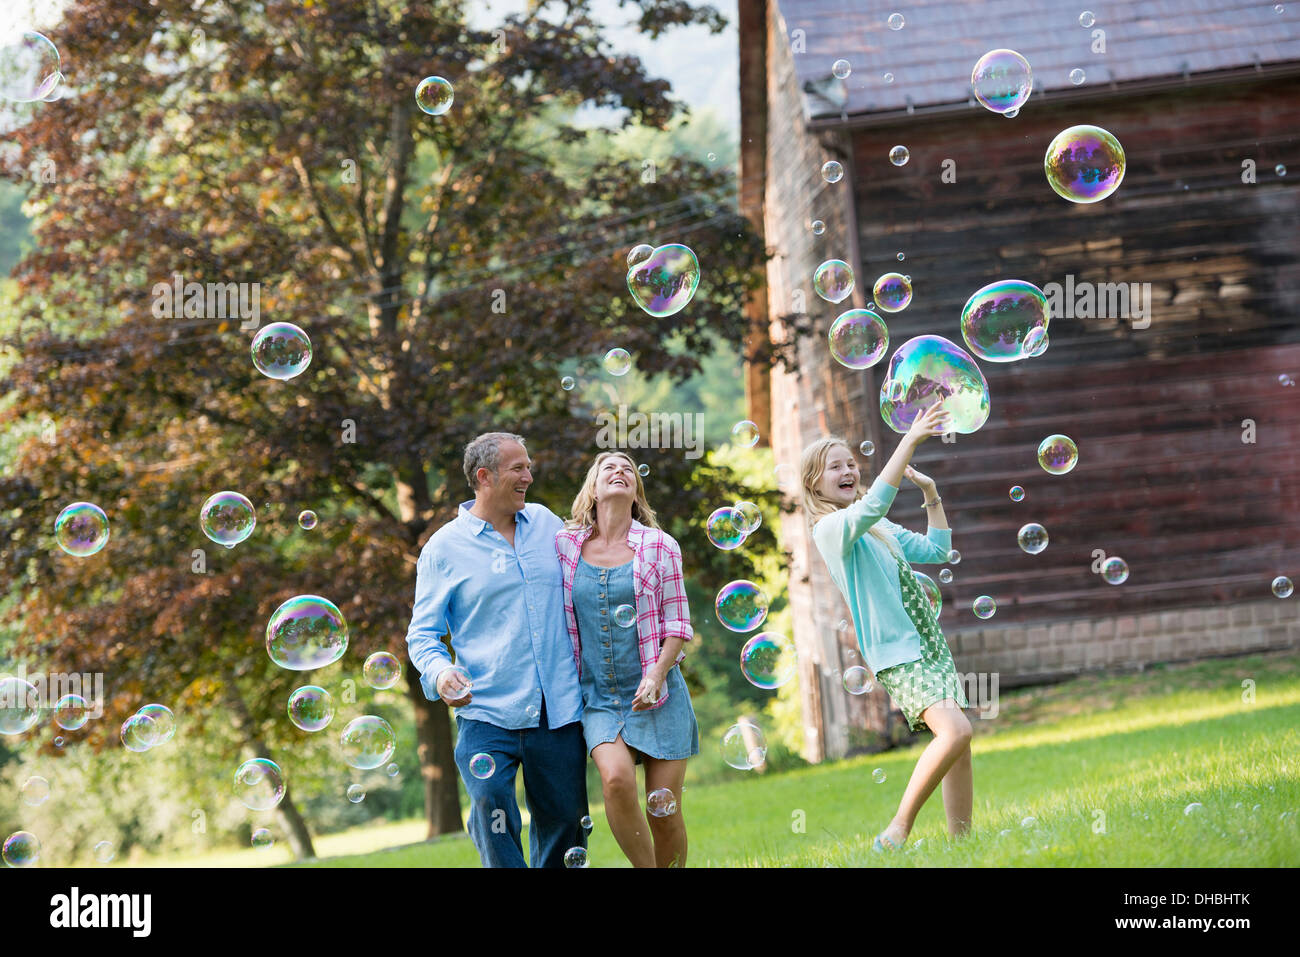 A family sitting on the grass outside a bar, blowing bubbles and laughing. - Stock Image